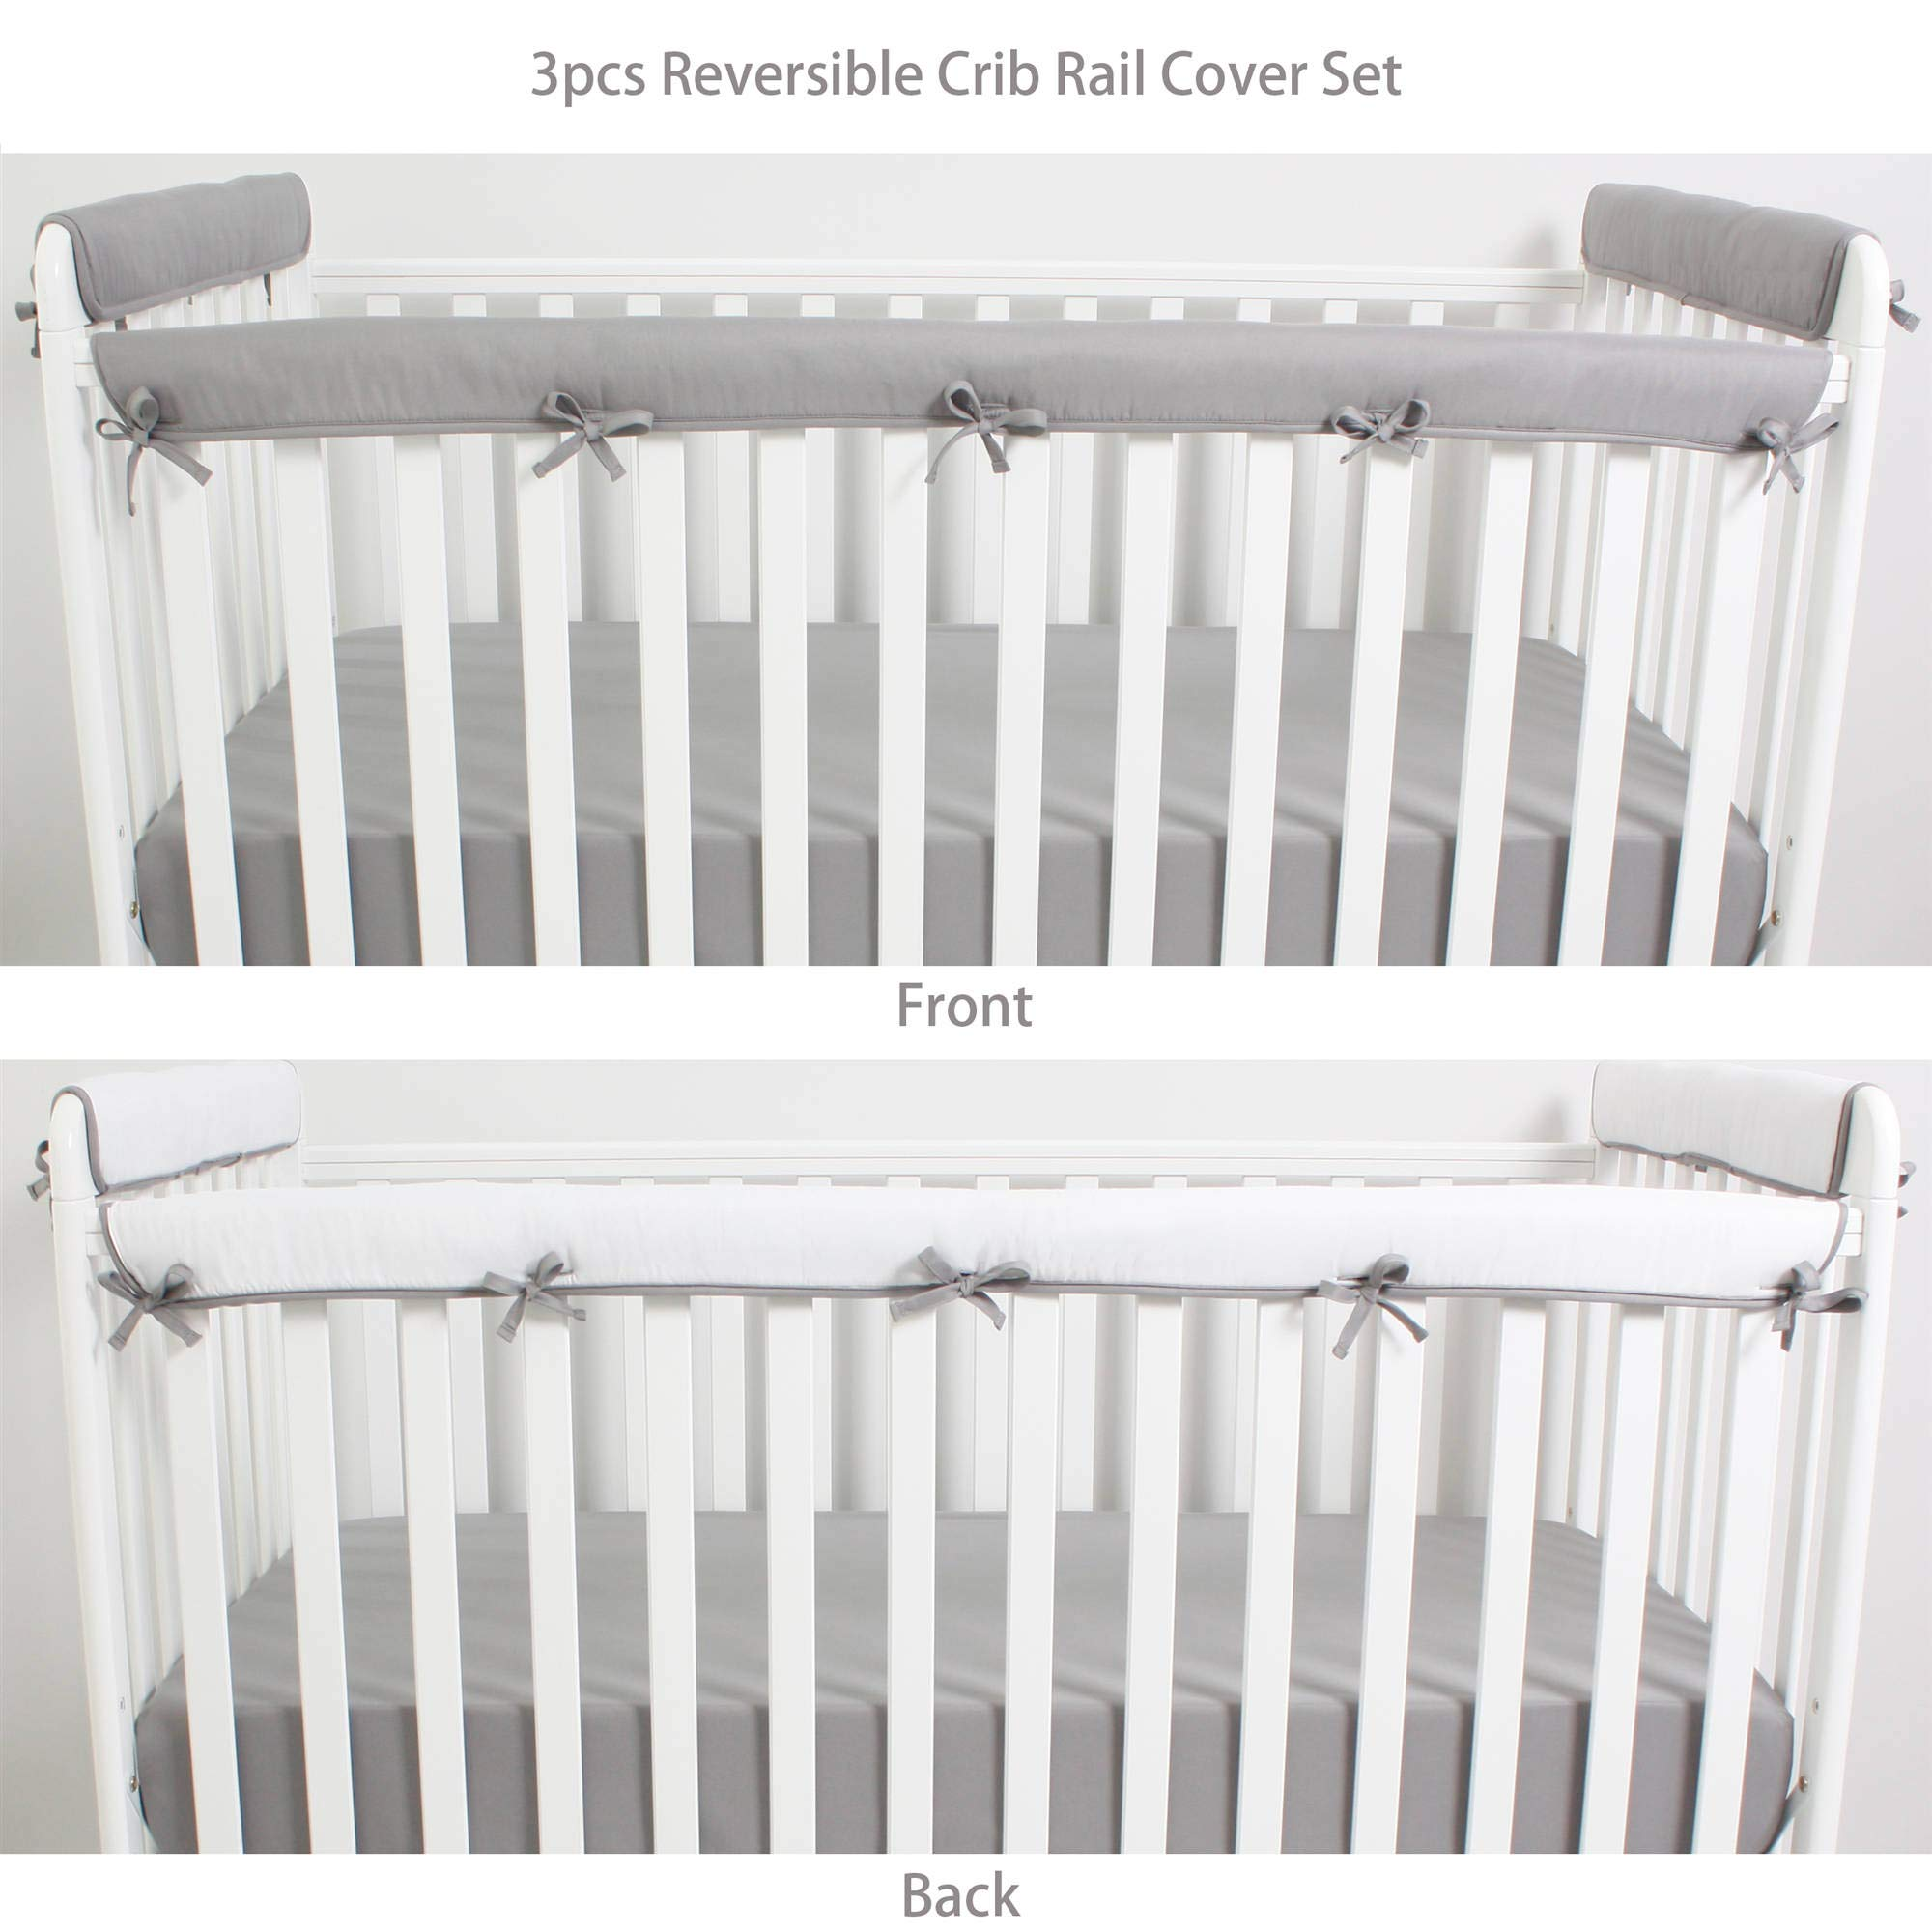 CaSaJa 3 Pieces Reversible Microfiber Crib Rail Cover Set for 1 Front Rail and 2 Side Rails, Soft Batting Inner for Baby Teething Guard, Gray or White, Fits Up to 8 inches Around or 4 inches Folded by CaSaJa